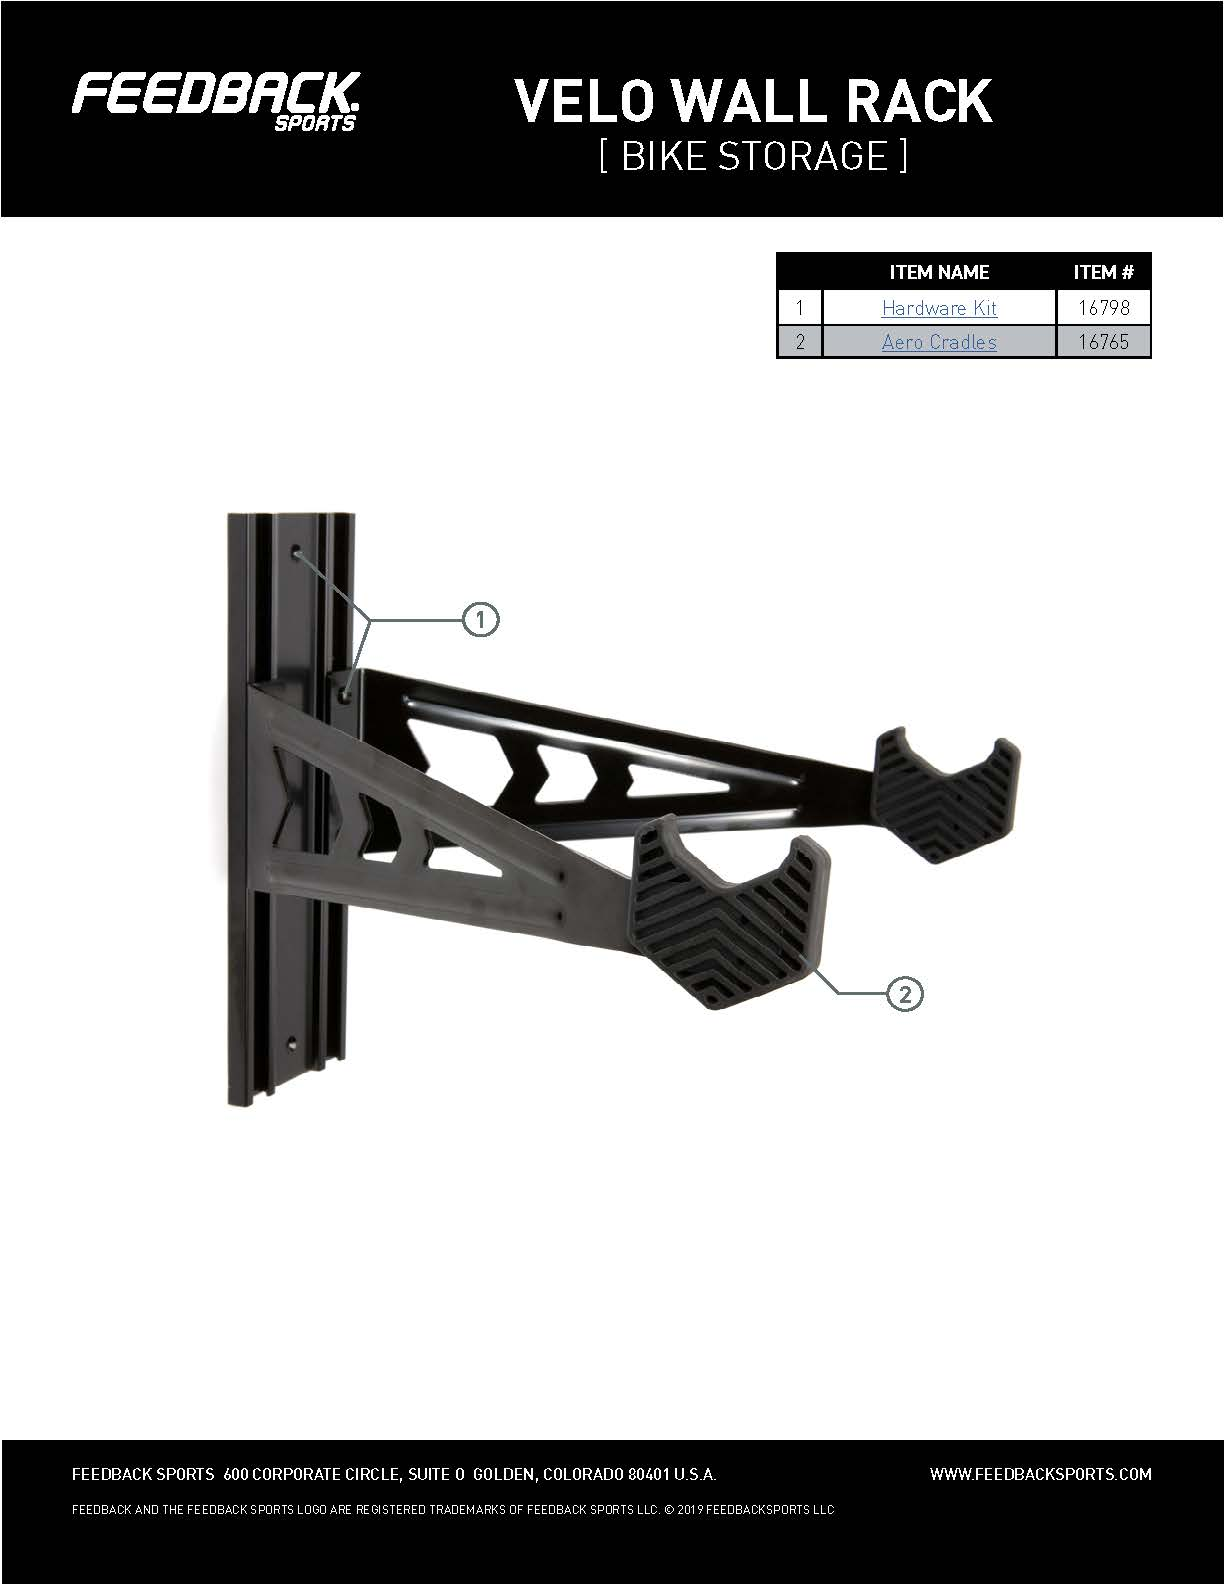 Velo wall rack small parts